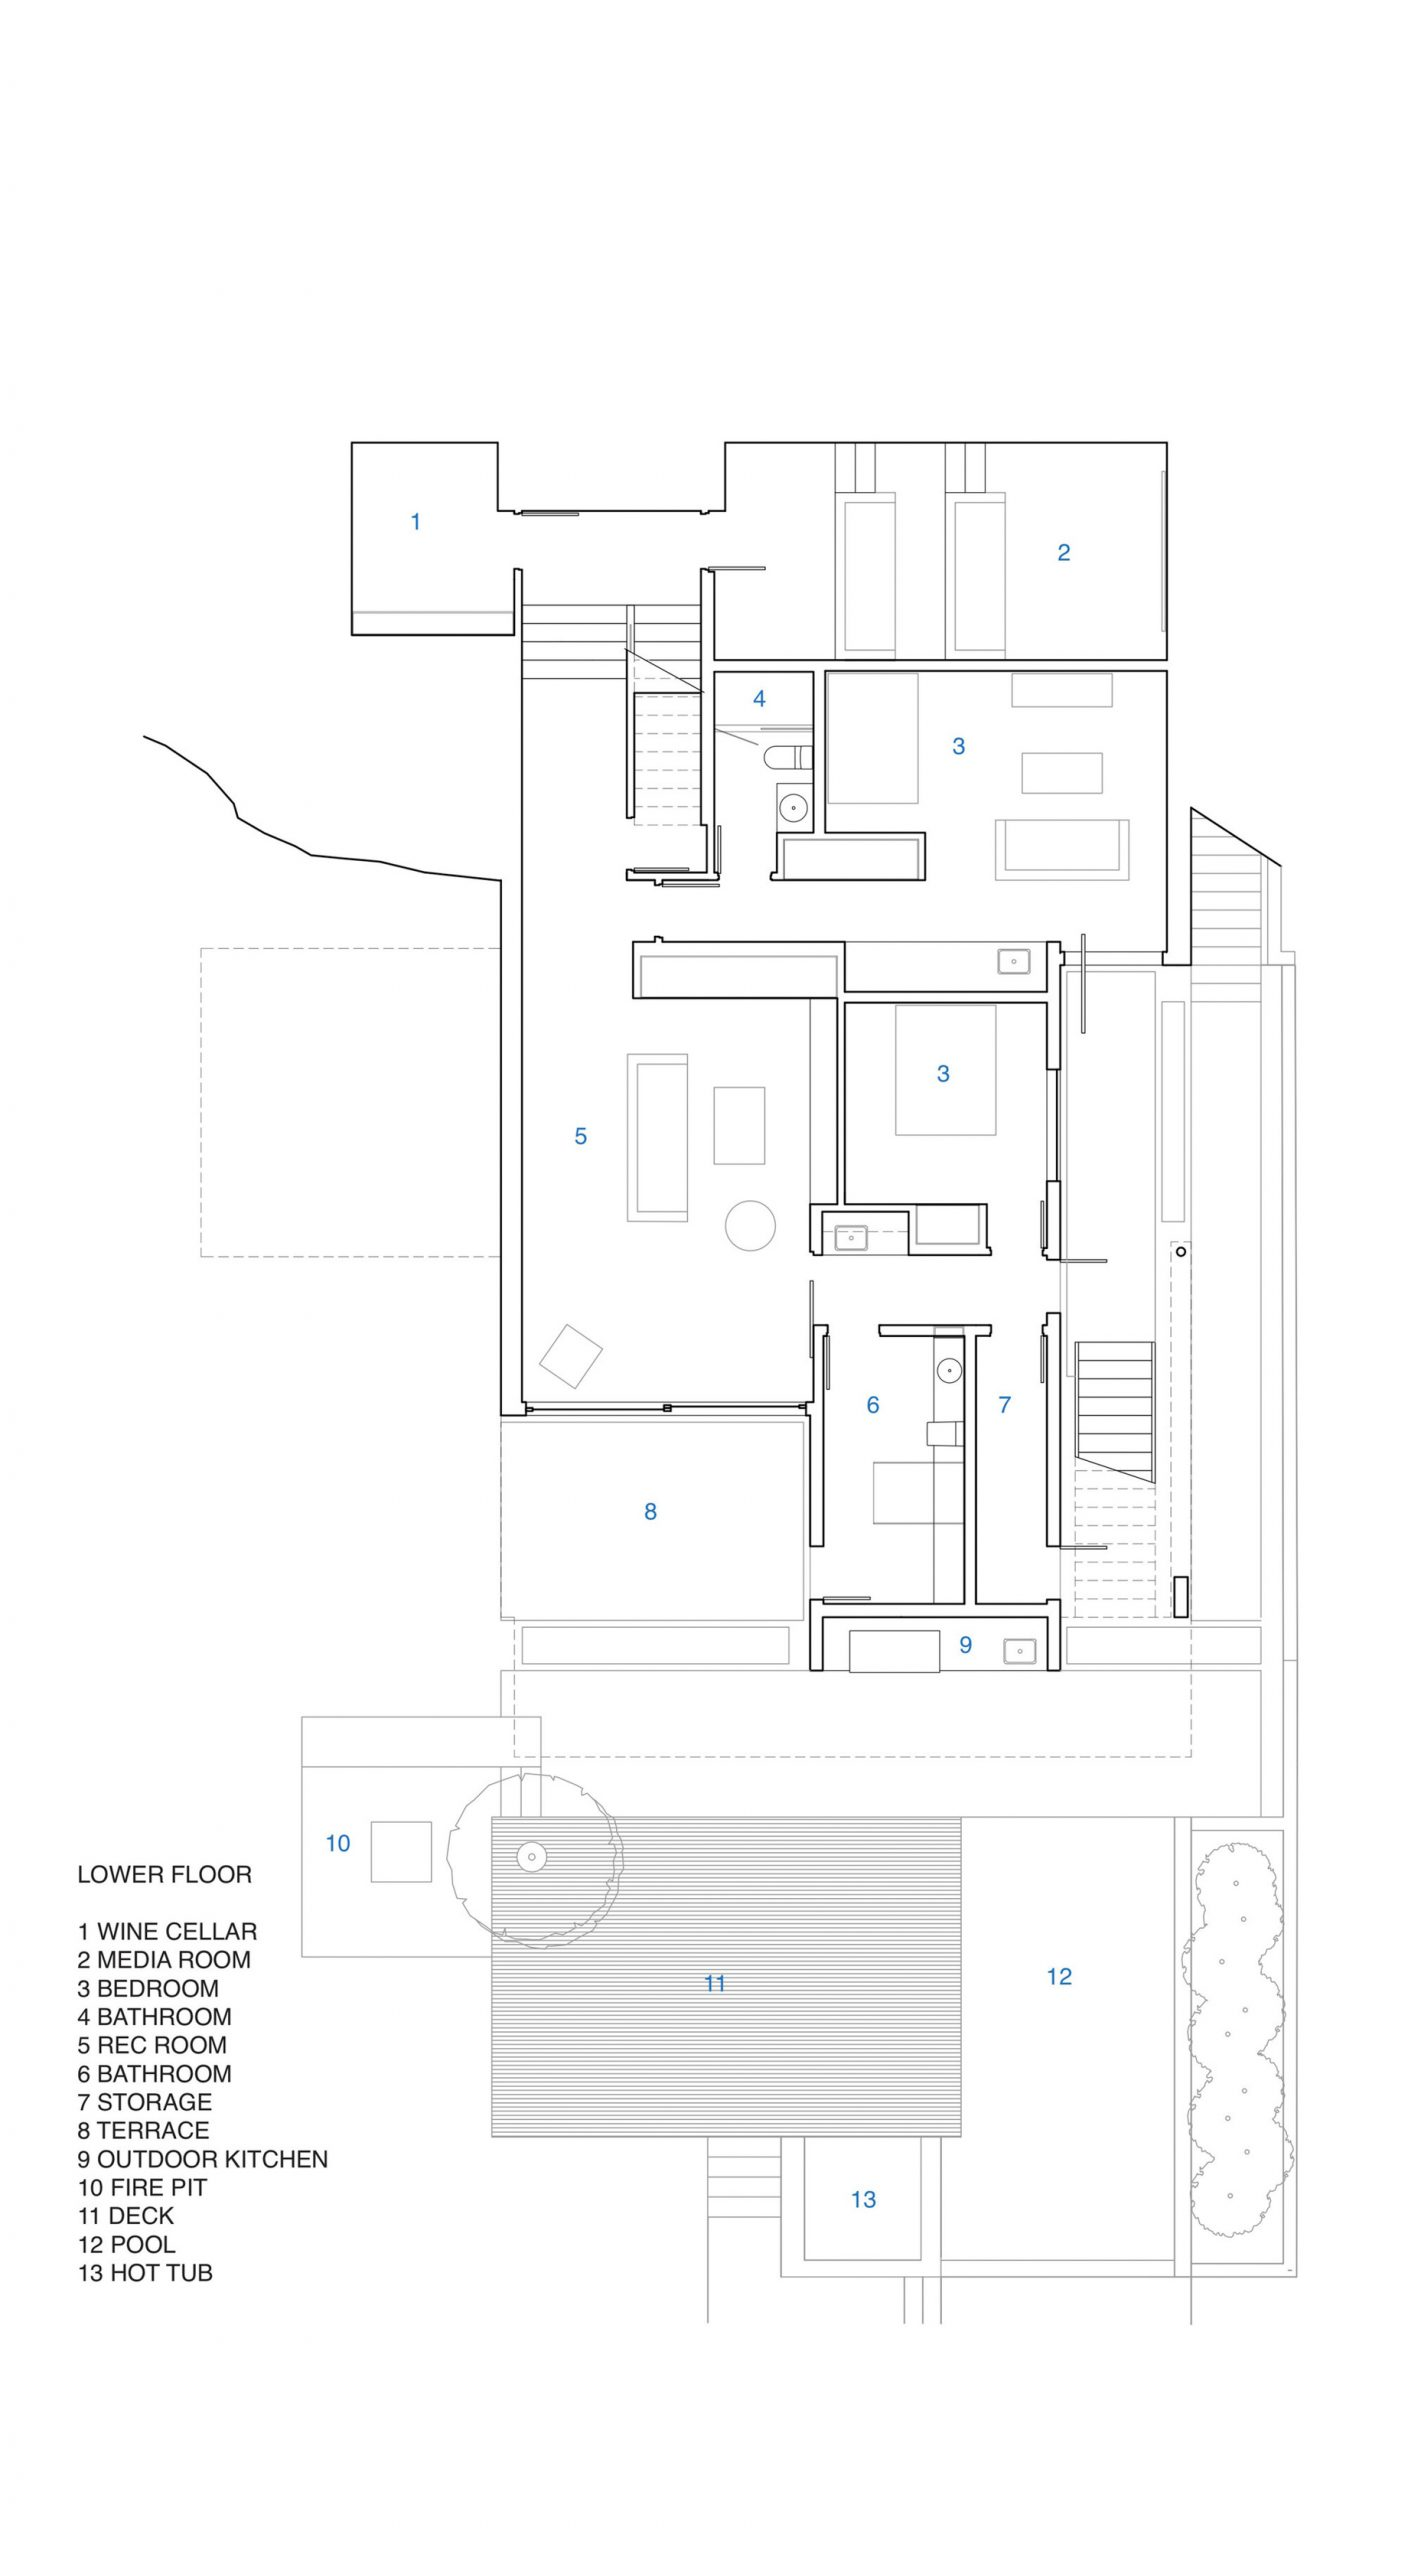 Floor Plans - Russet Residence Modern Luxury - Russet Pl, West Vancouver, BC, Canada